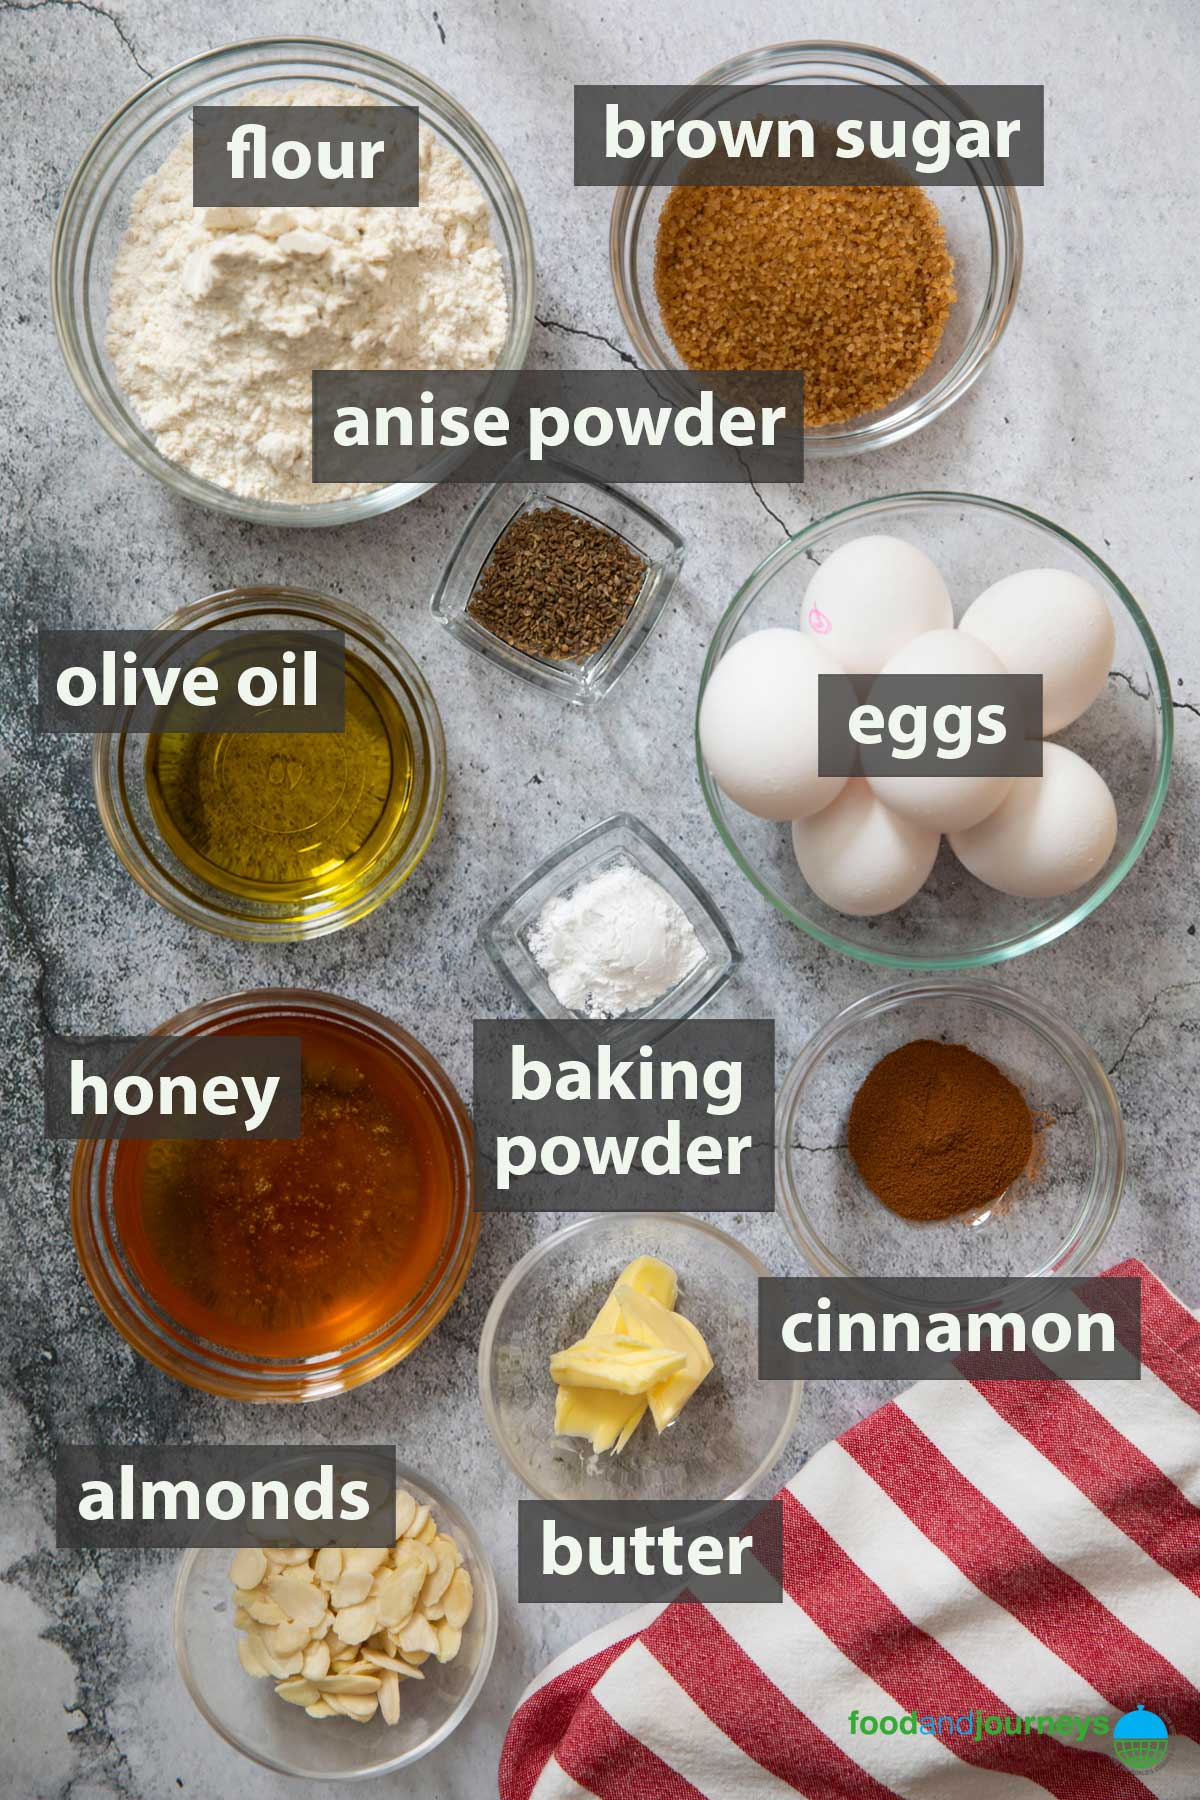 An image showing all the ingredients you need to prepare Bolo de Mel.